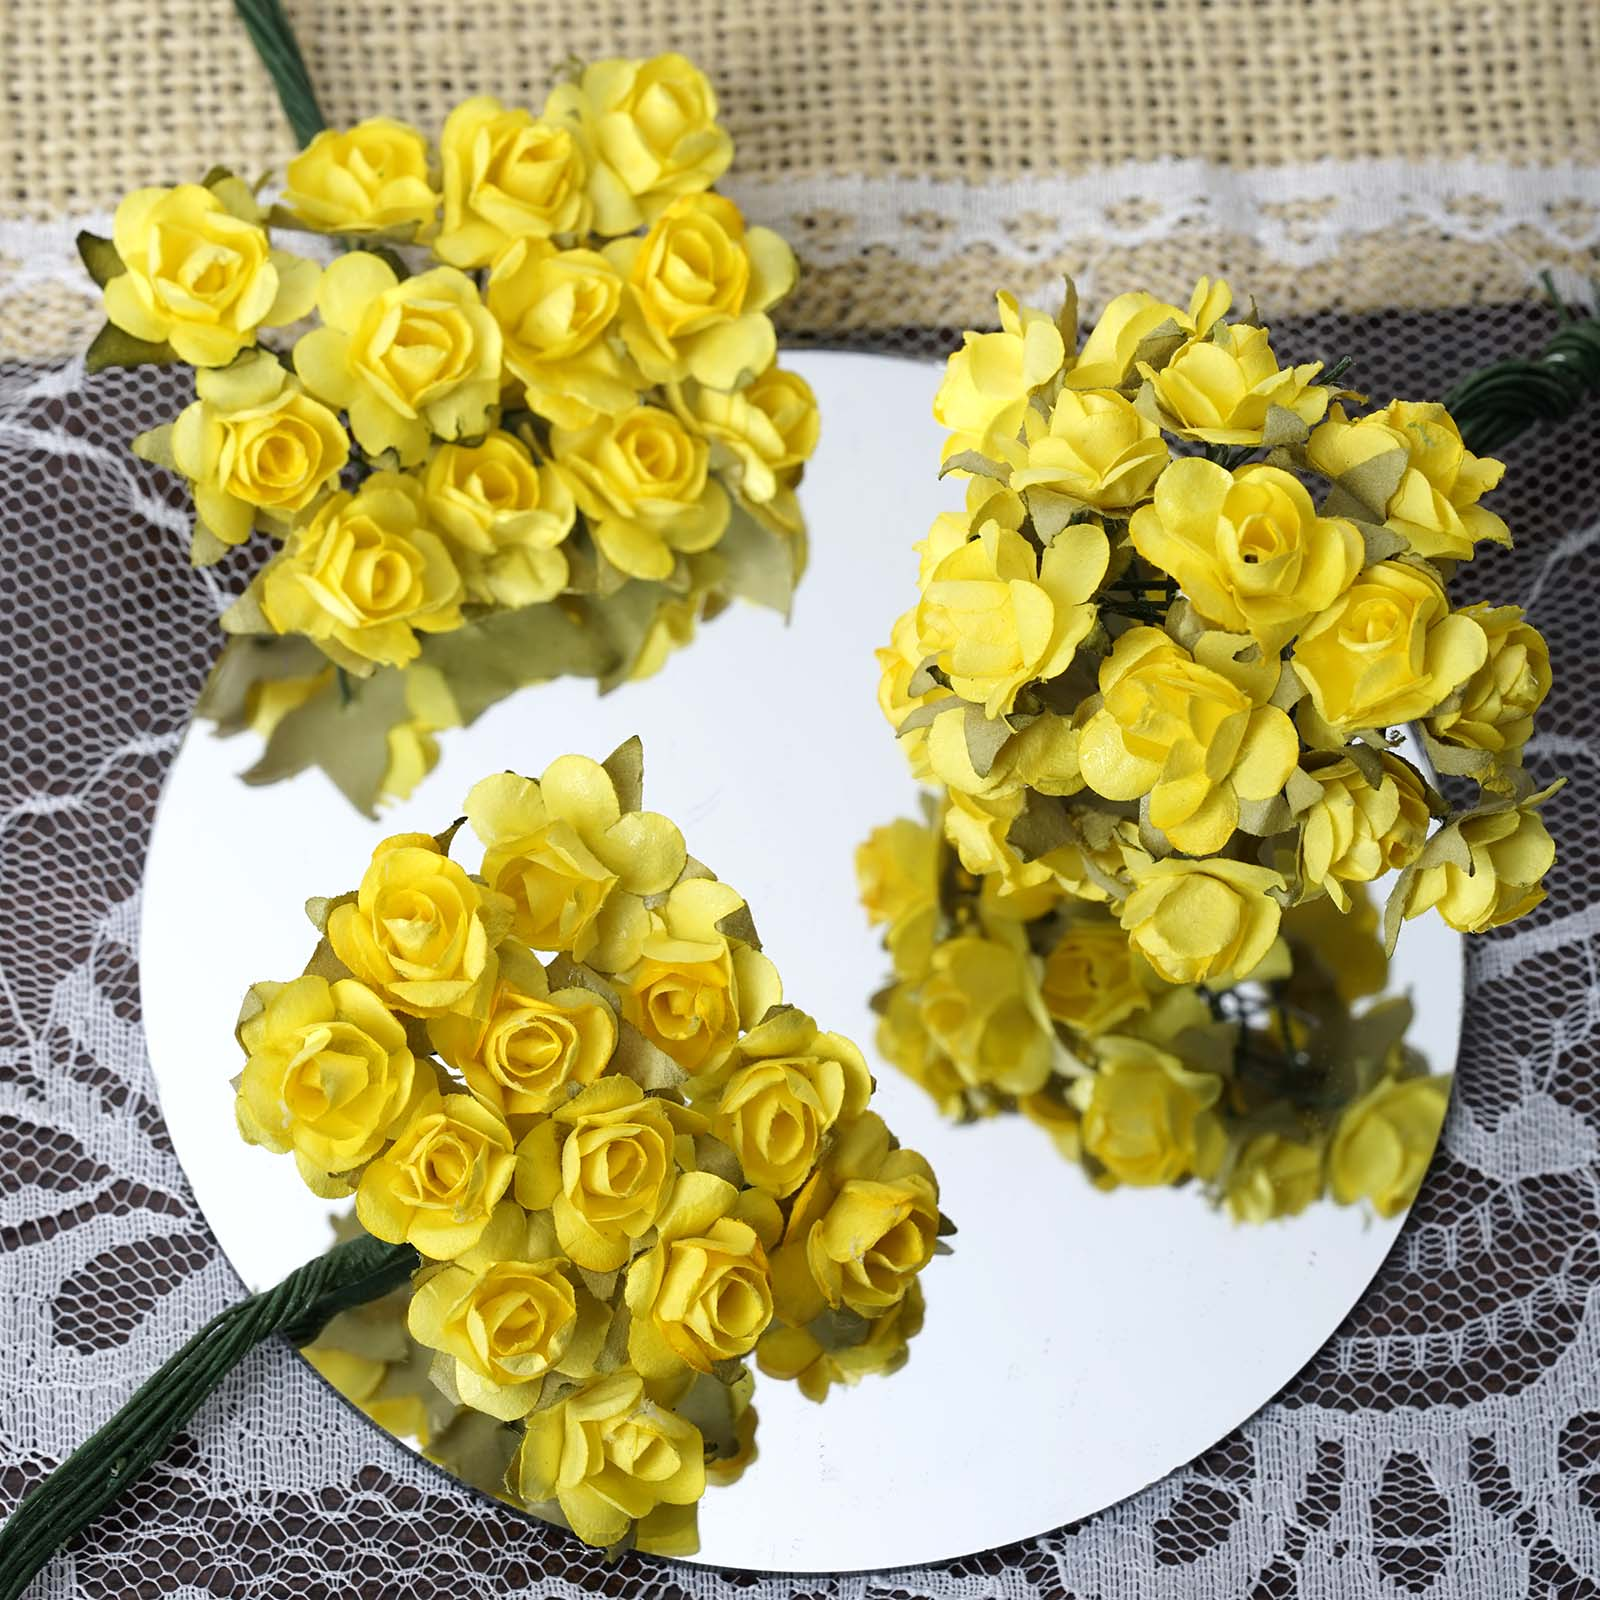 BalsaCircle 144 Craft Paper Roses - Mini Flowers for DIY Wedding Party Favors Decorations Supplies